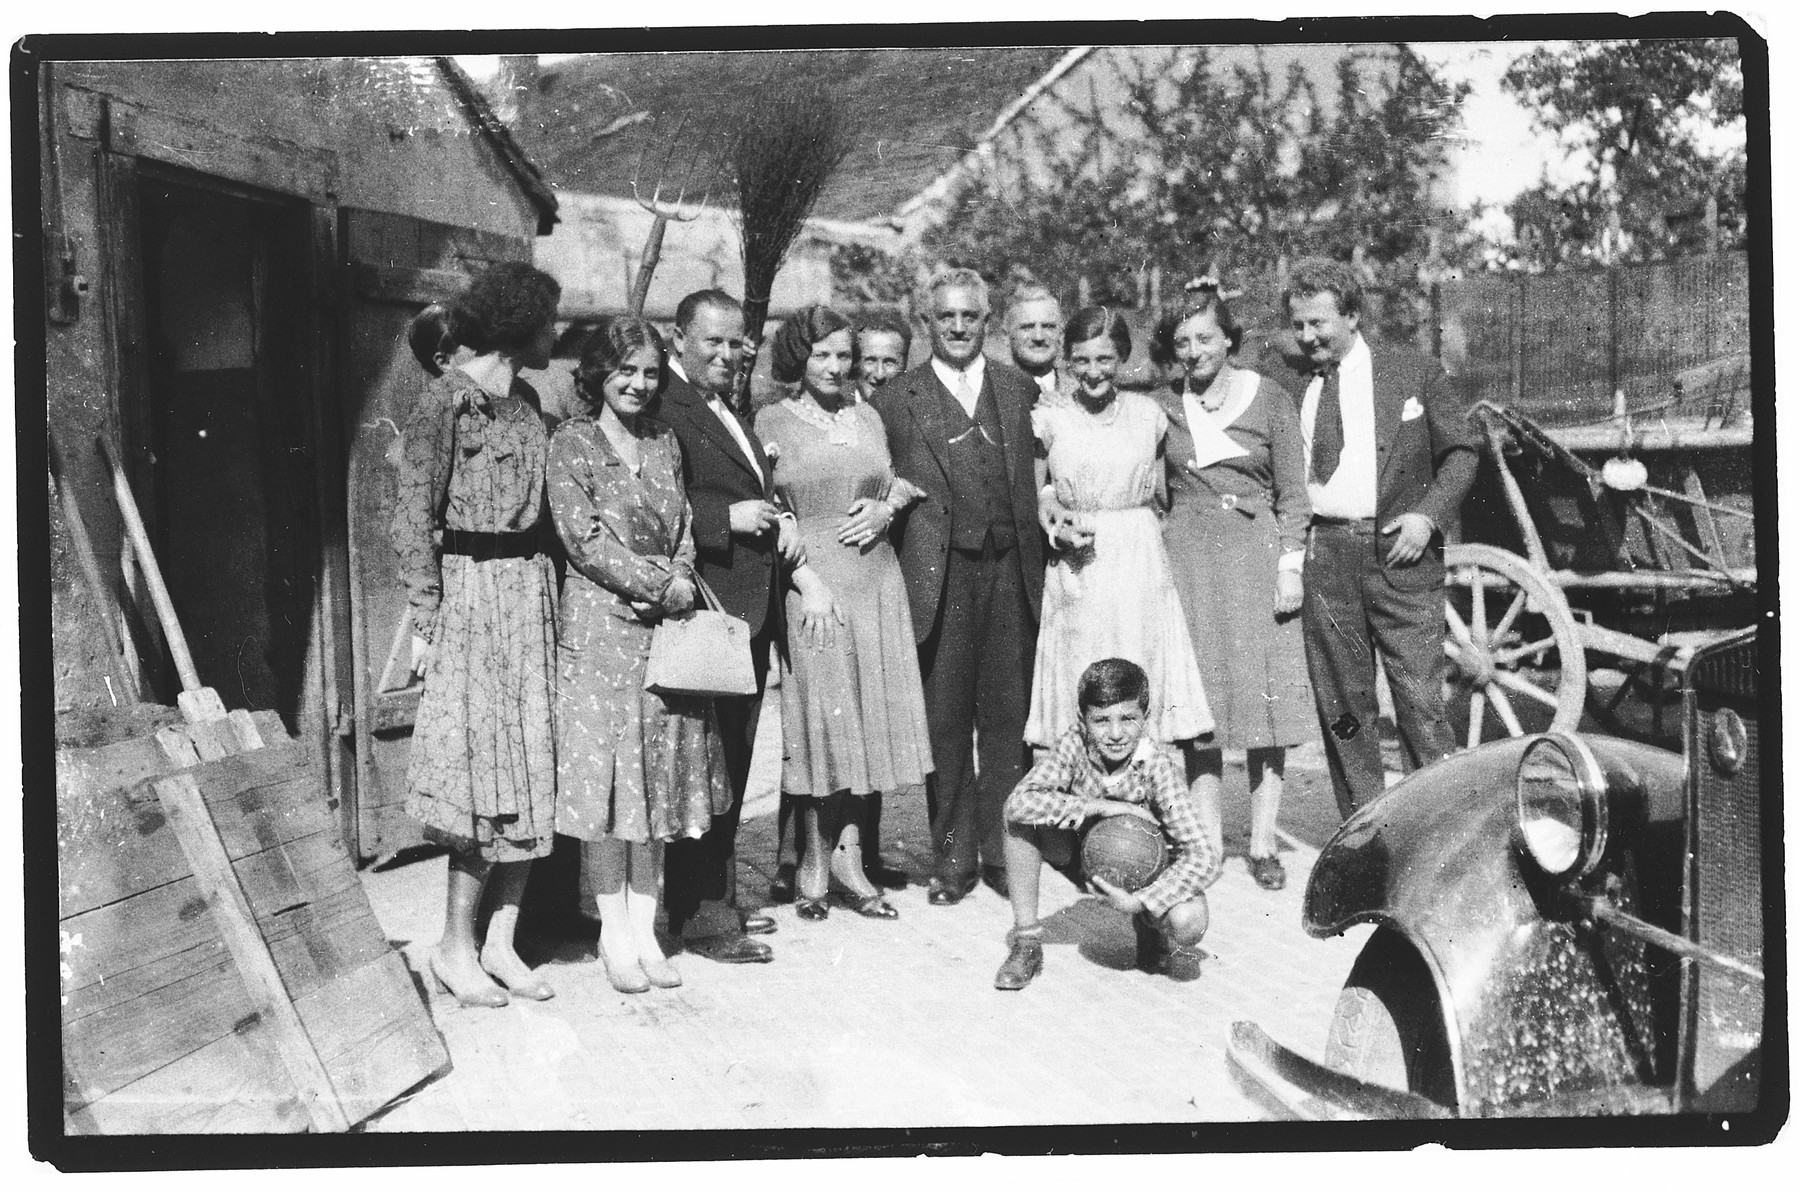 Group portrait of the extended Pisker family.  Pictured third from the right is Helen Pisker (later Sobotka, later Offenberger.)